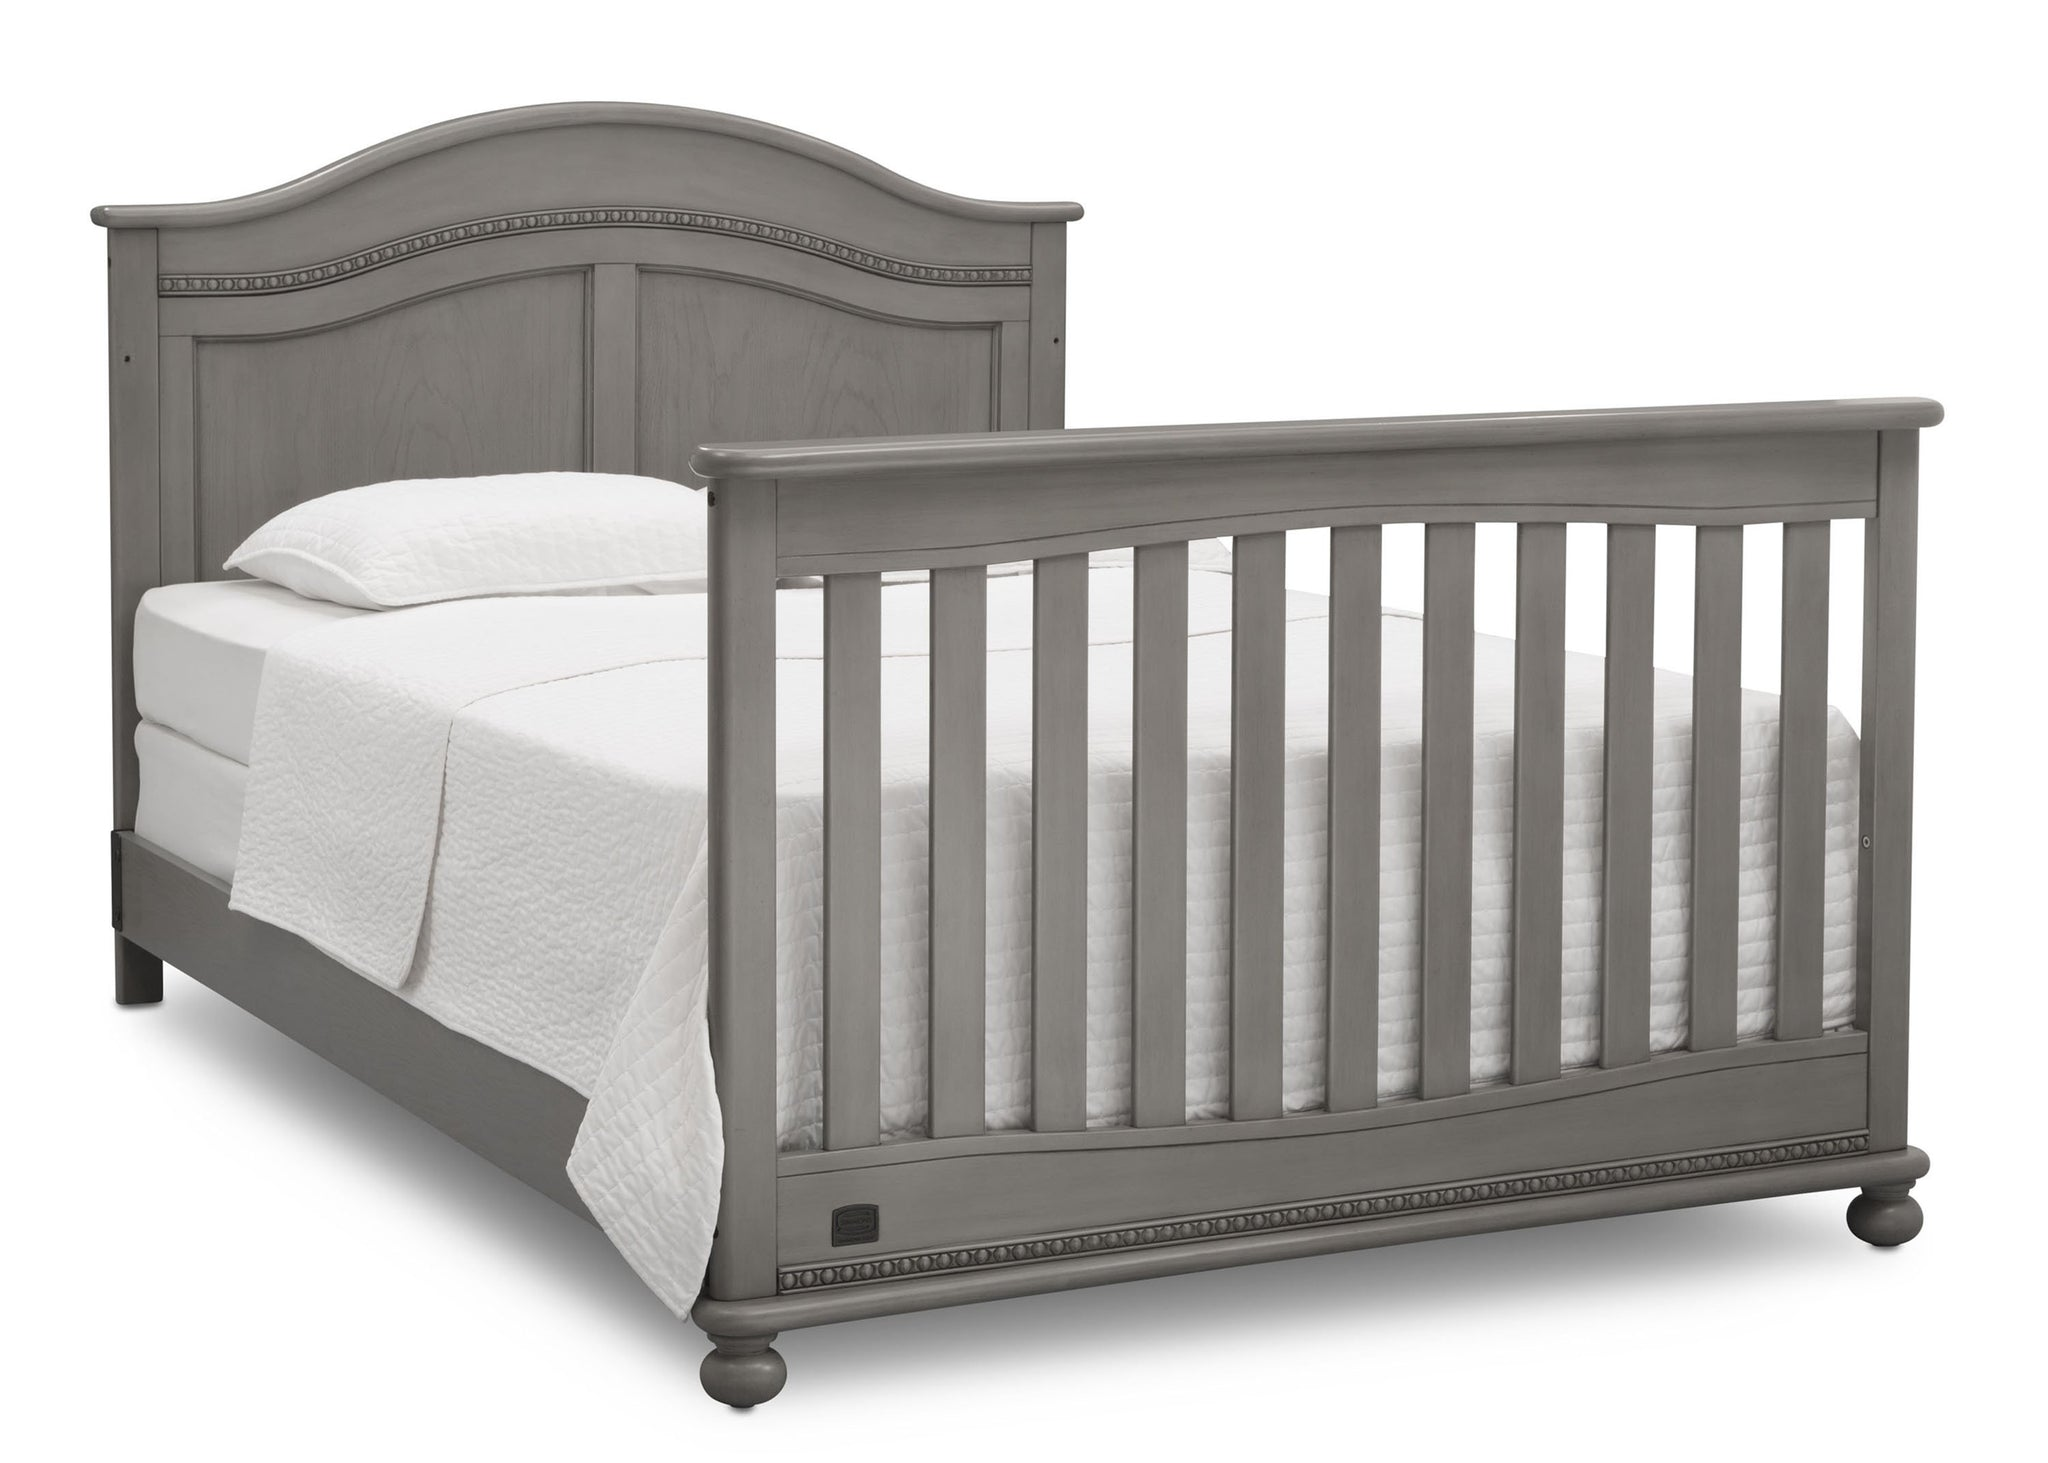 Simmons Kids Storm (161) Bedford 4-in-1 Convertible Crib (W337150), full bed, b6b